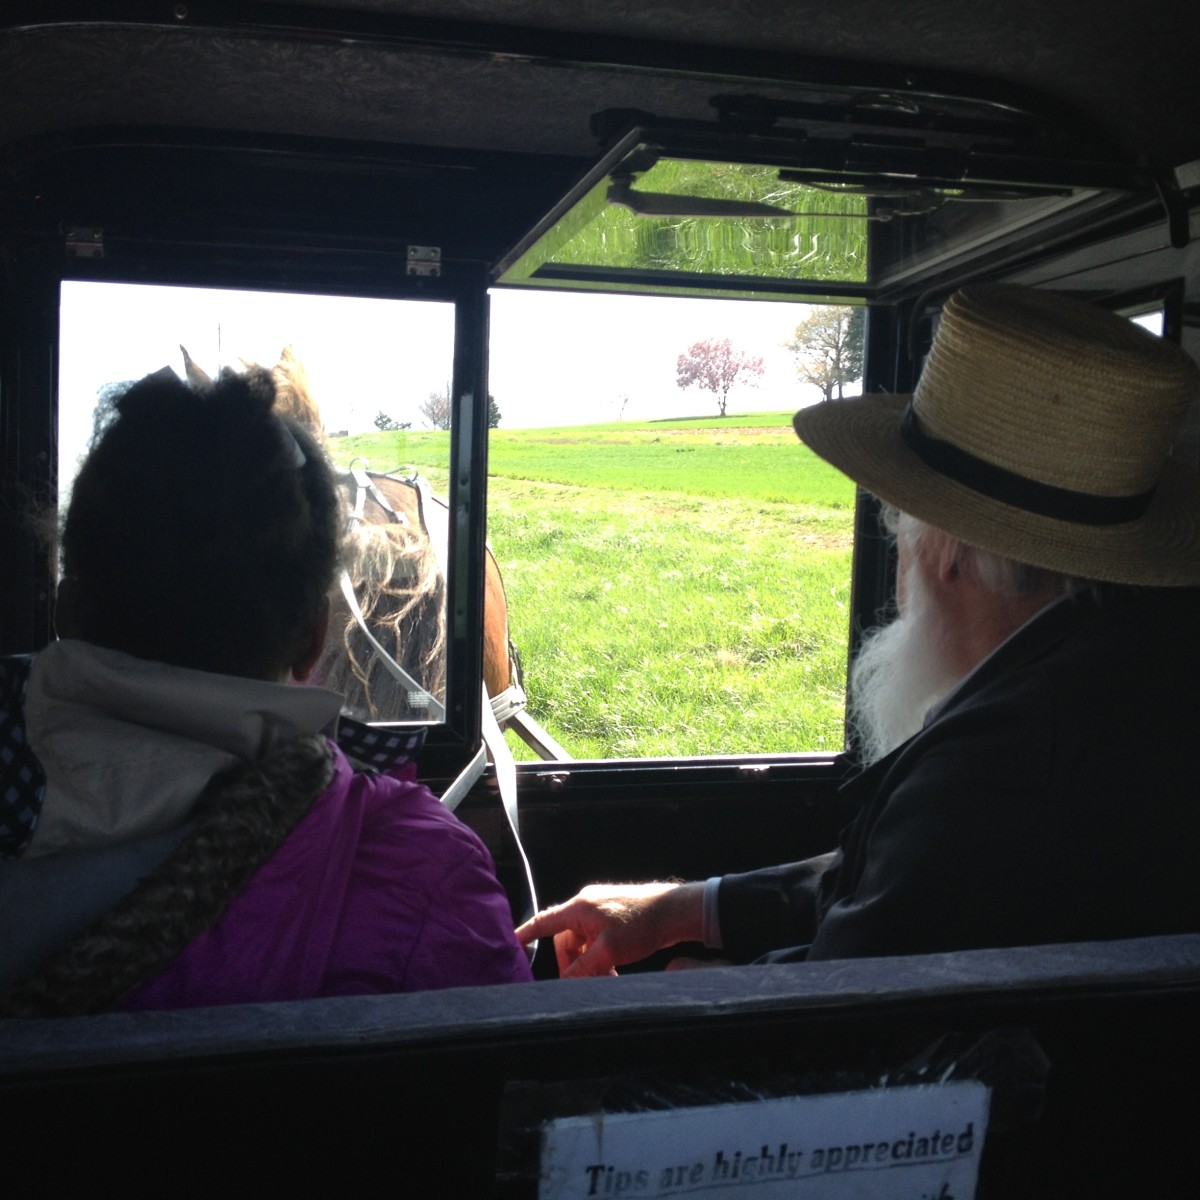 An Amish man giving a buggy tour of Amish country. Another great day trip from New York City.